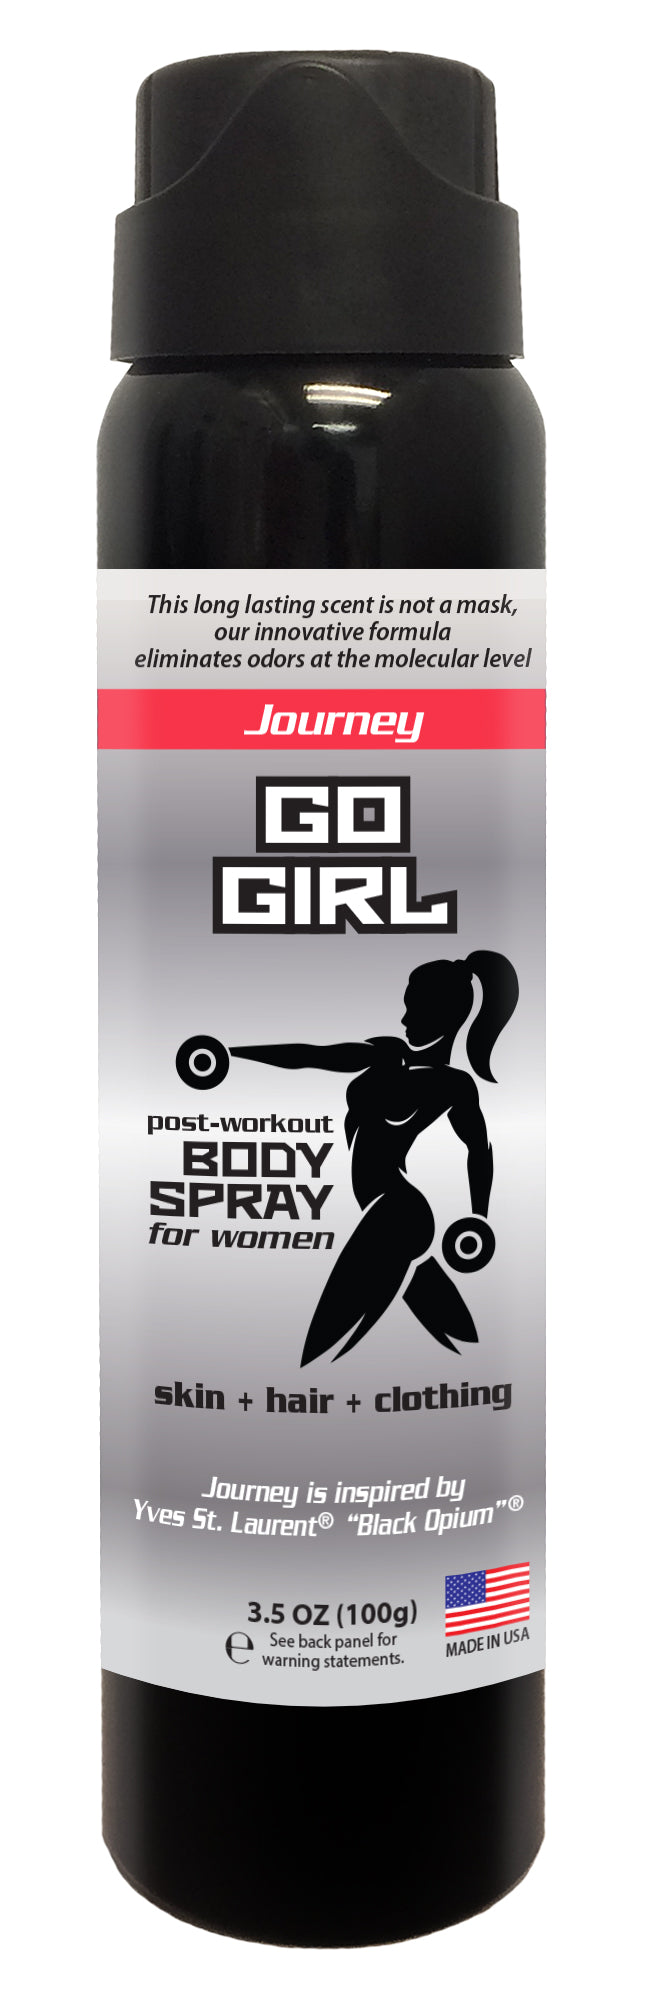 Go Girl - Women's Post Workout Body Spray 3.5 oz (JOURNEY)